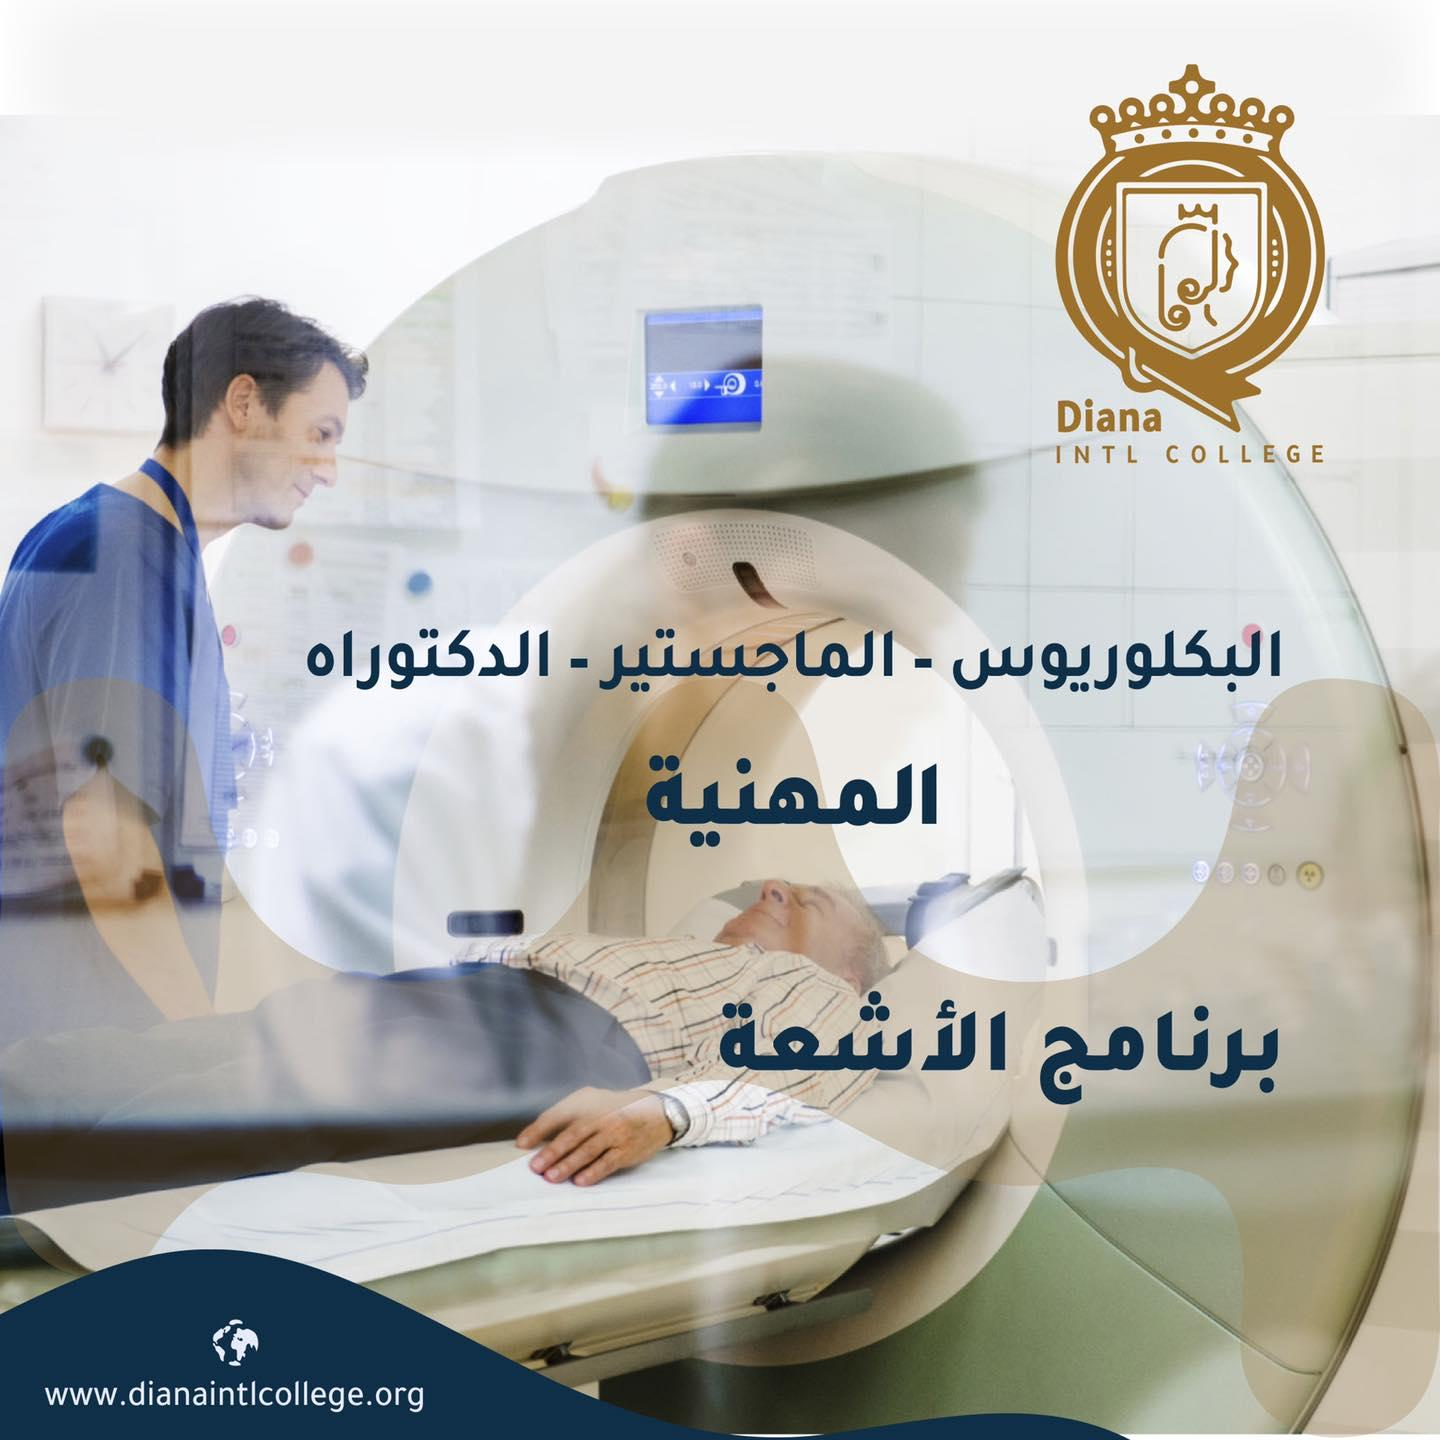 Department of Medical Sciences - Radiology